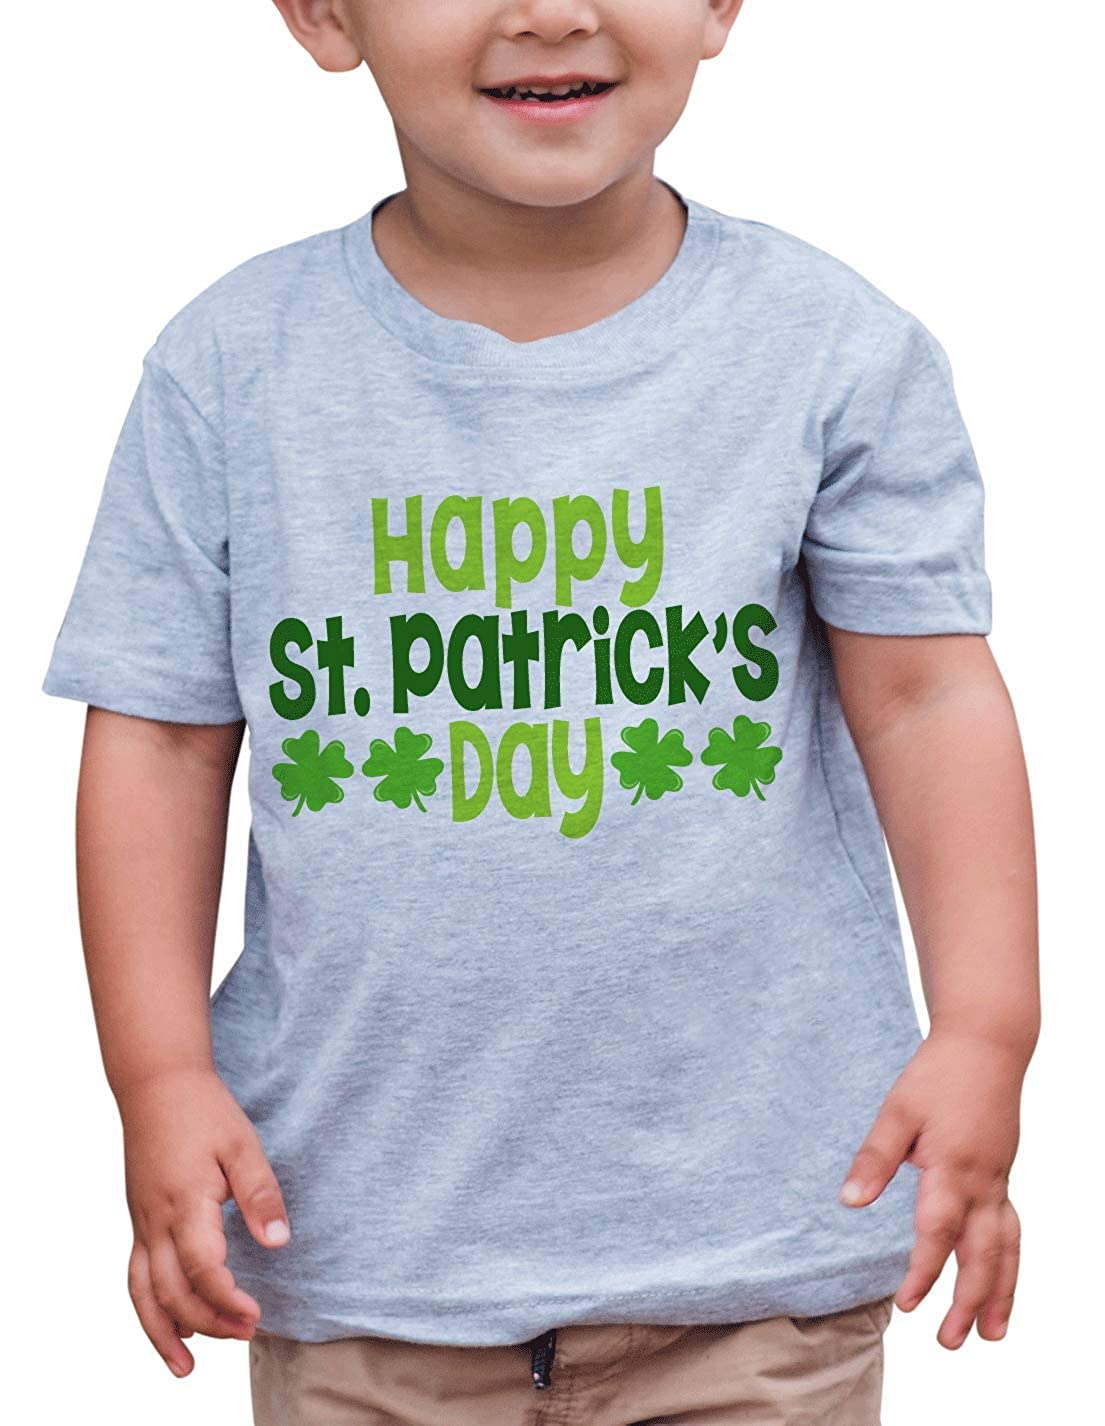 Patricks Day T-Shirt 7 ate 9 Apparel Kids Happy St